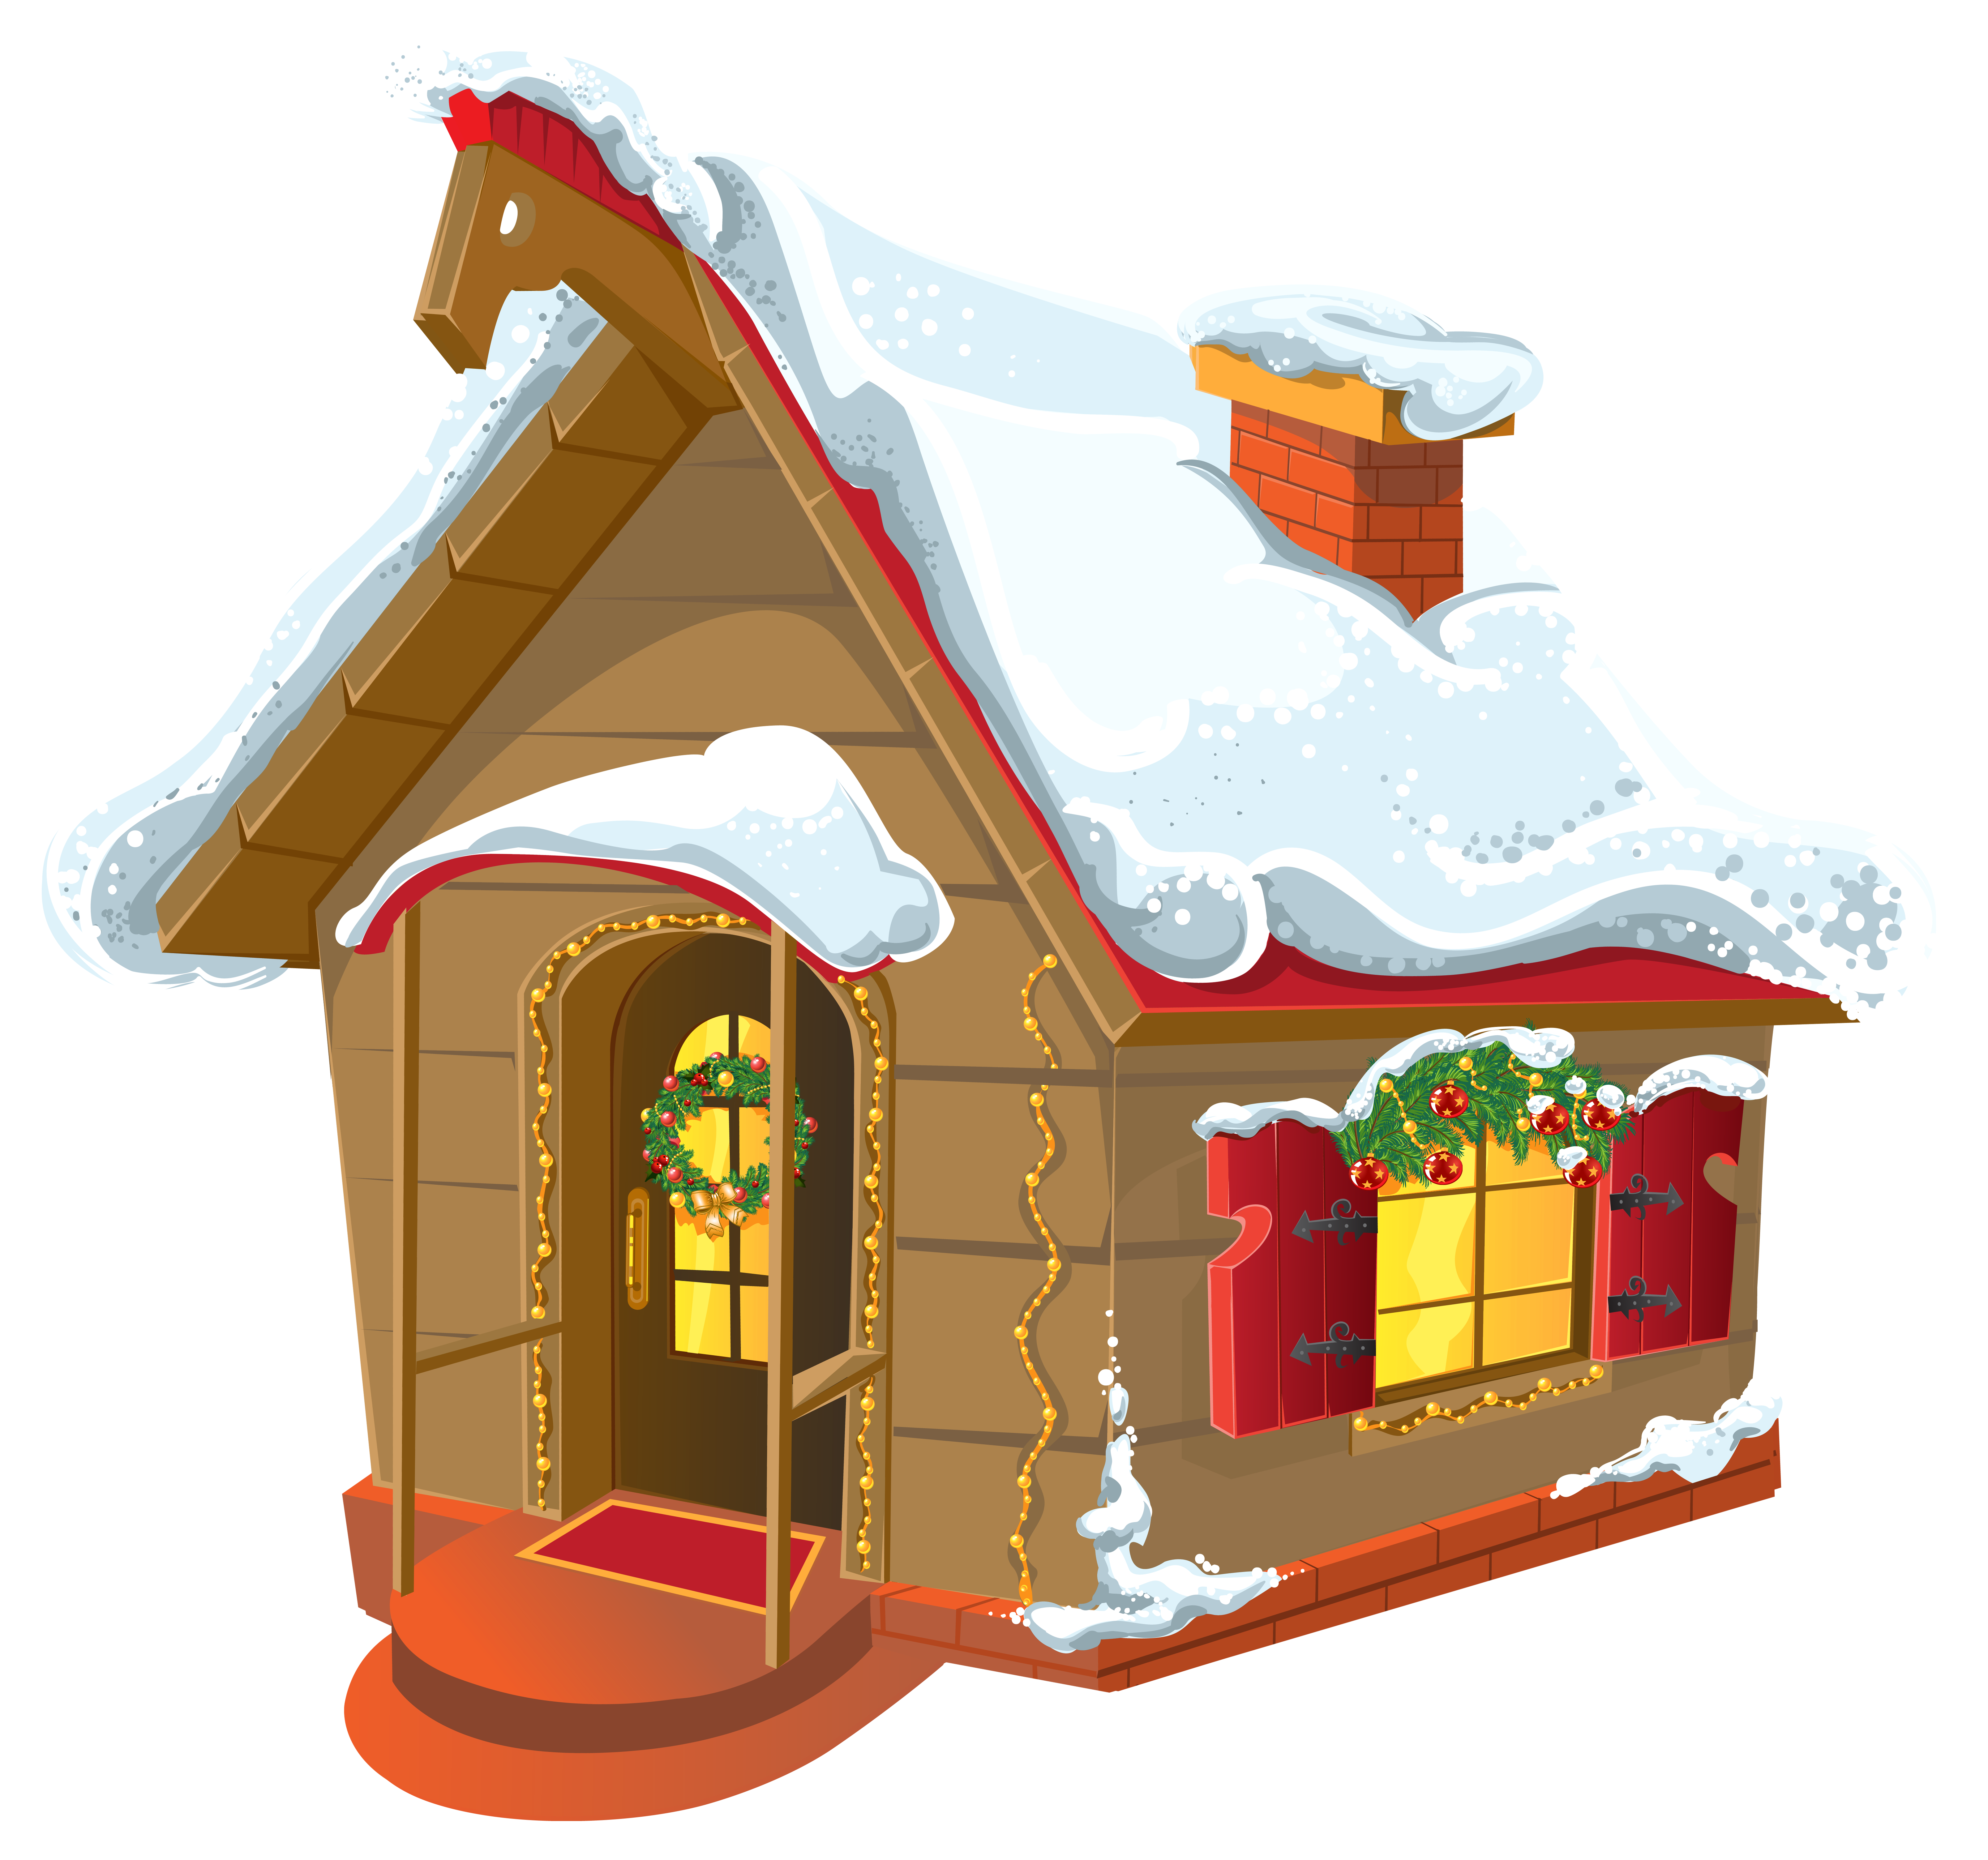 Winter house png image. Home clipart christmas